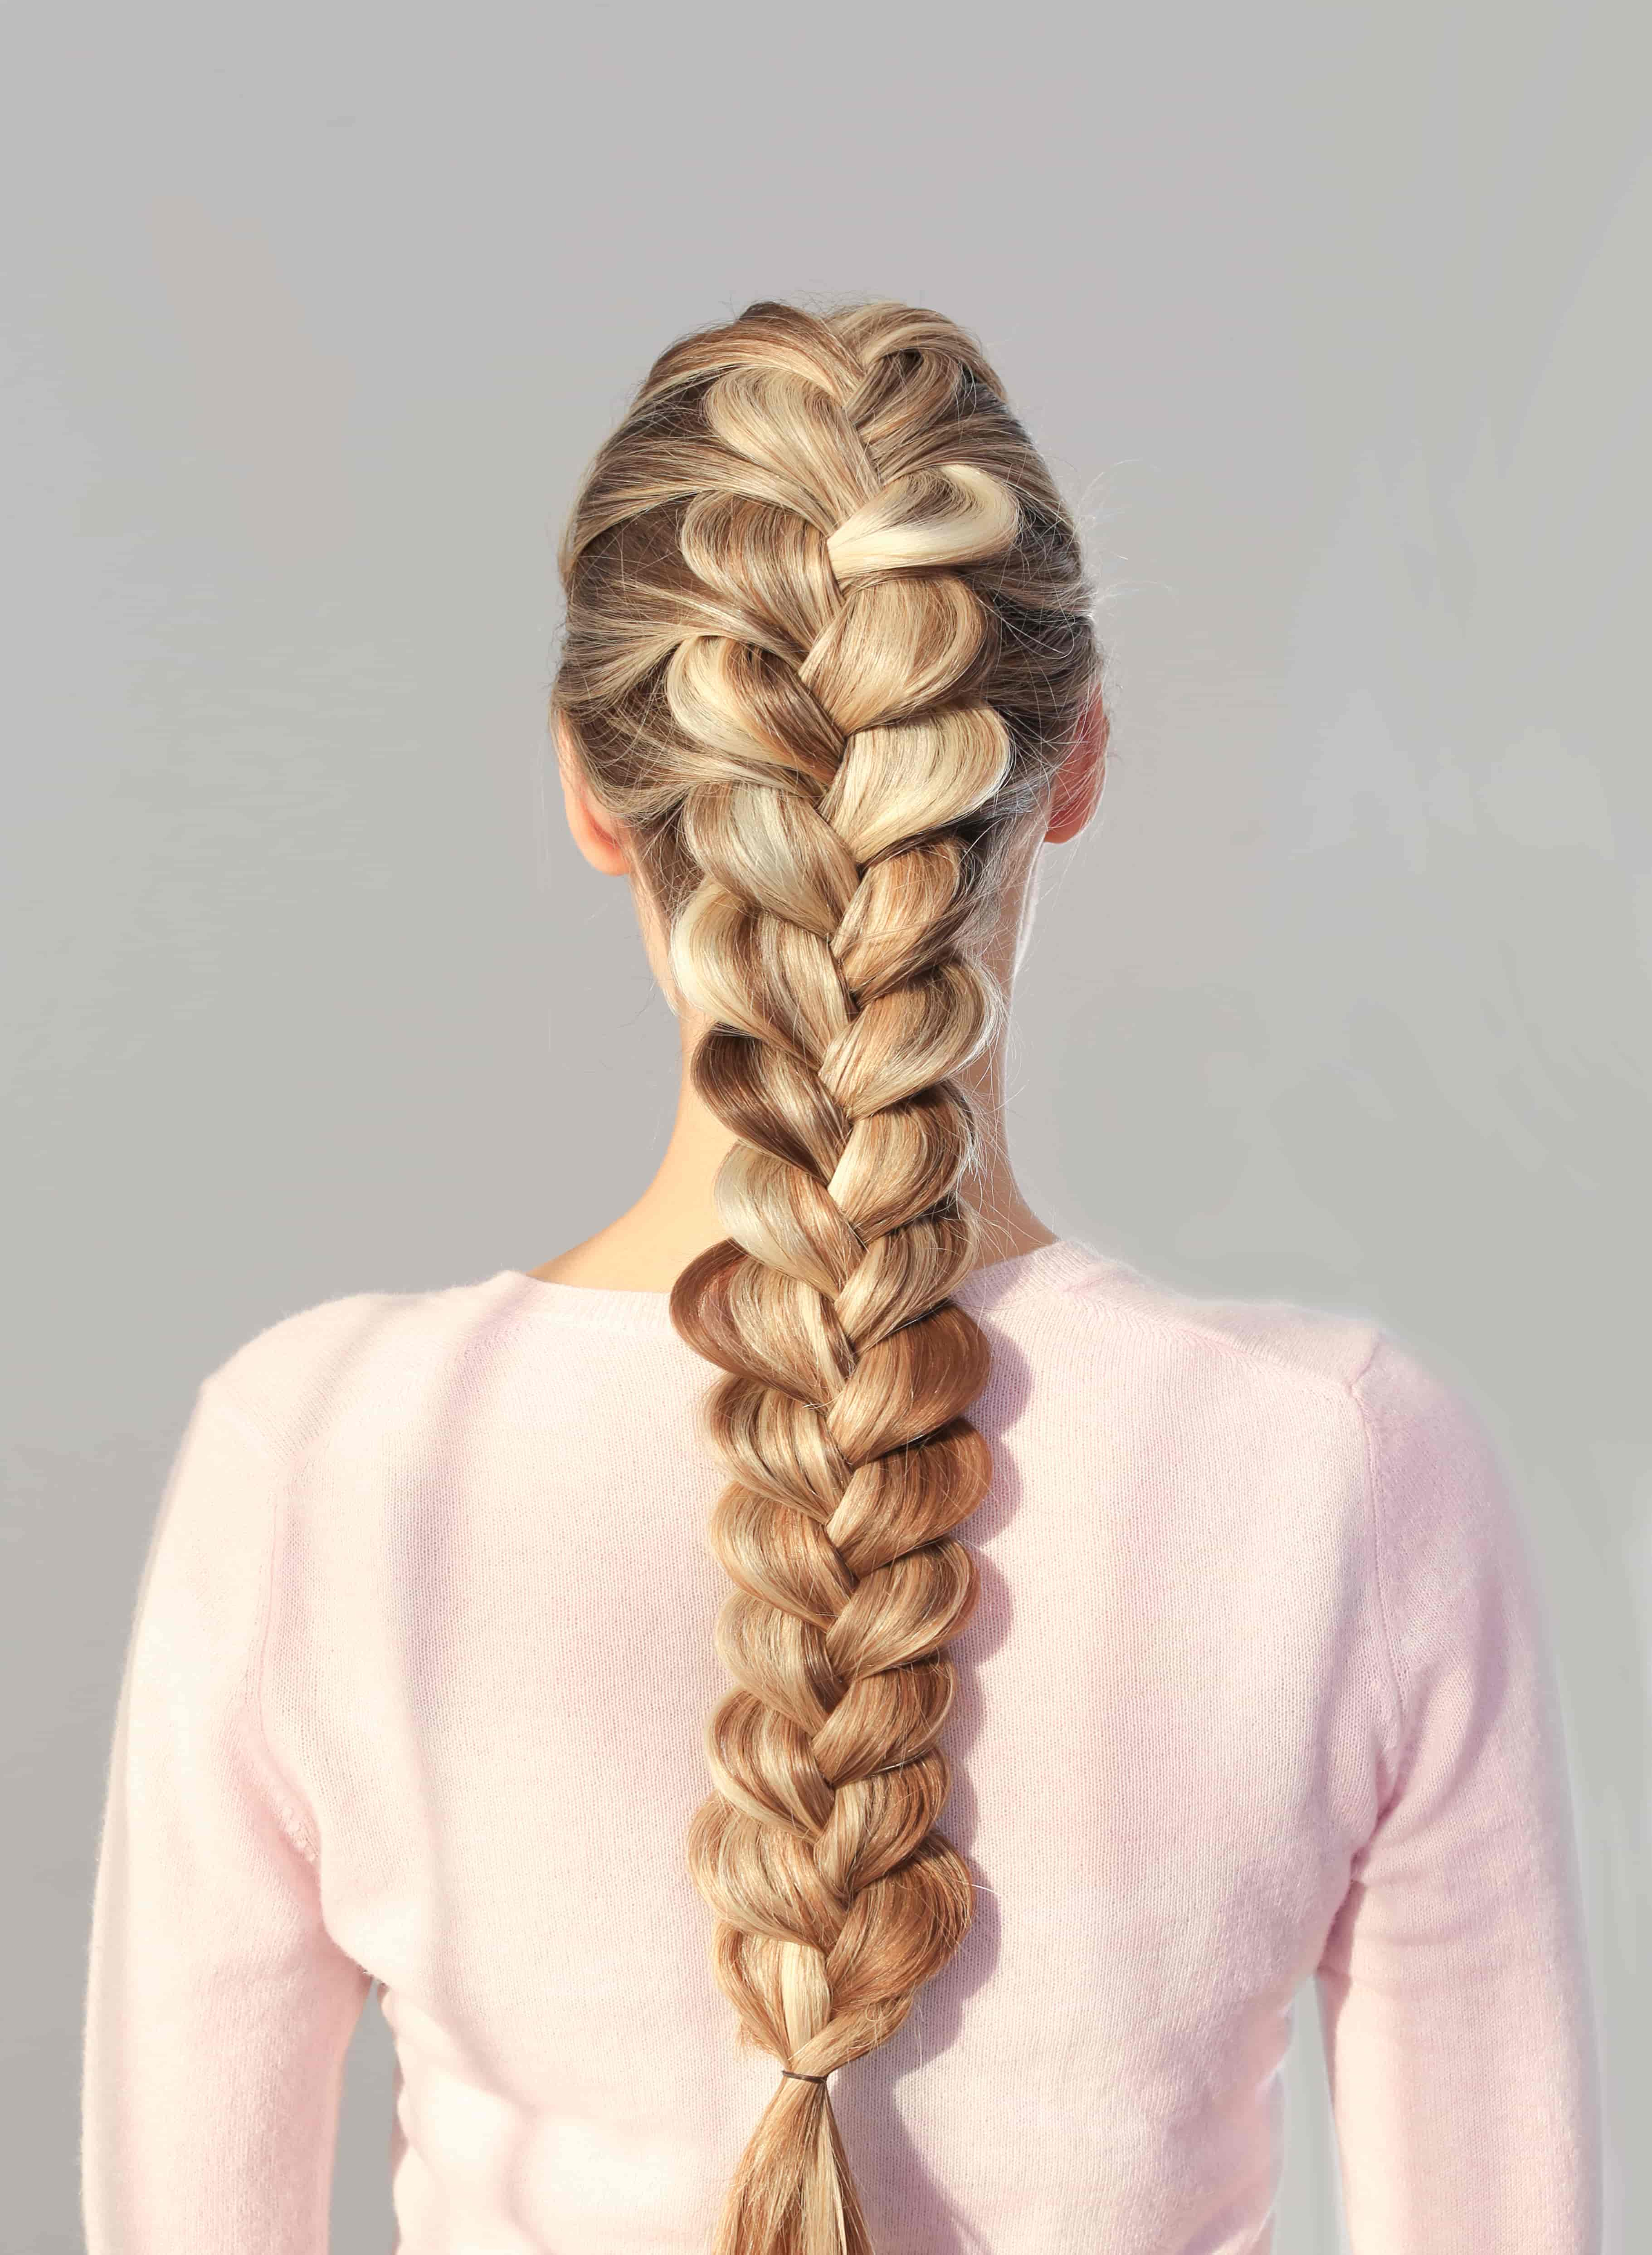 blonde woman with braided hair